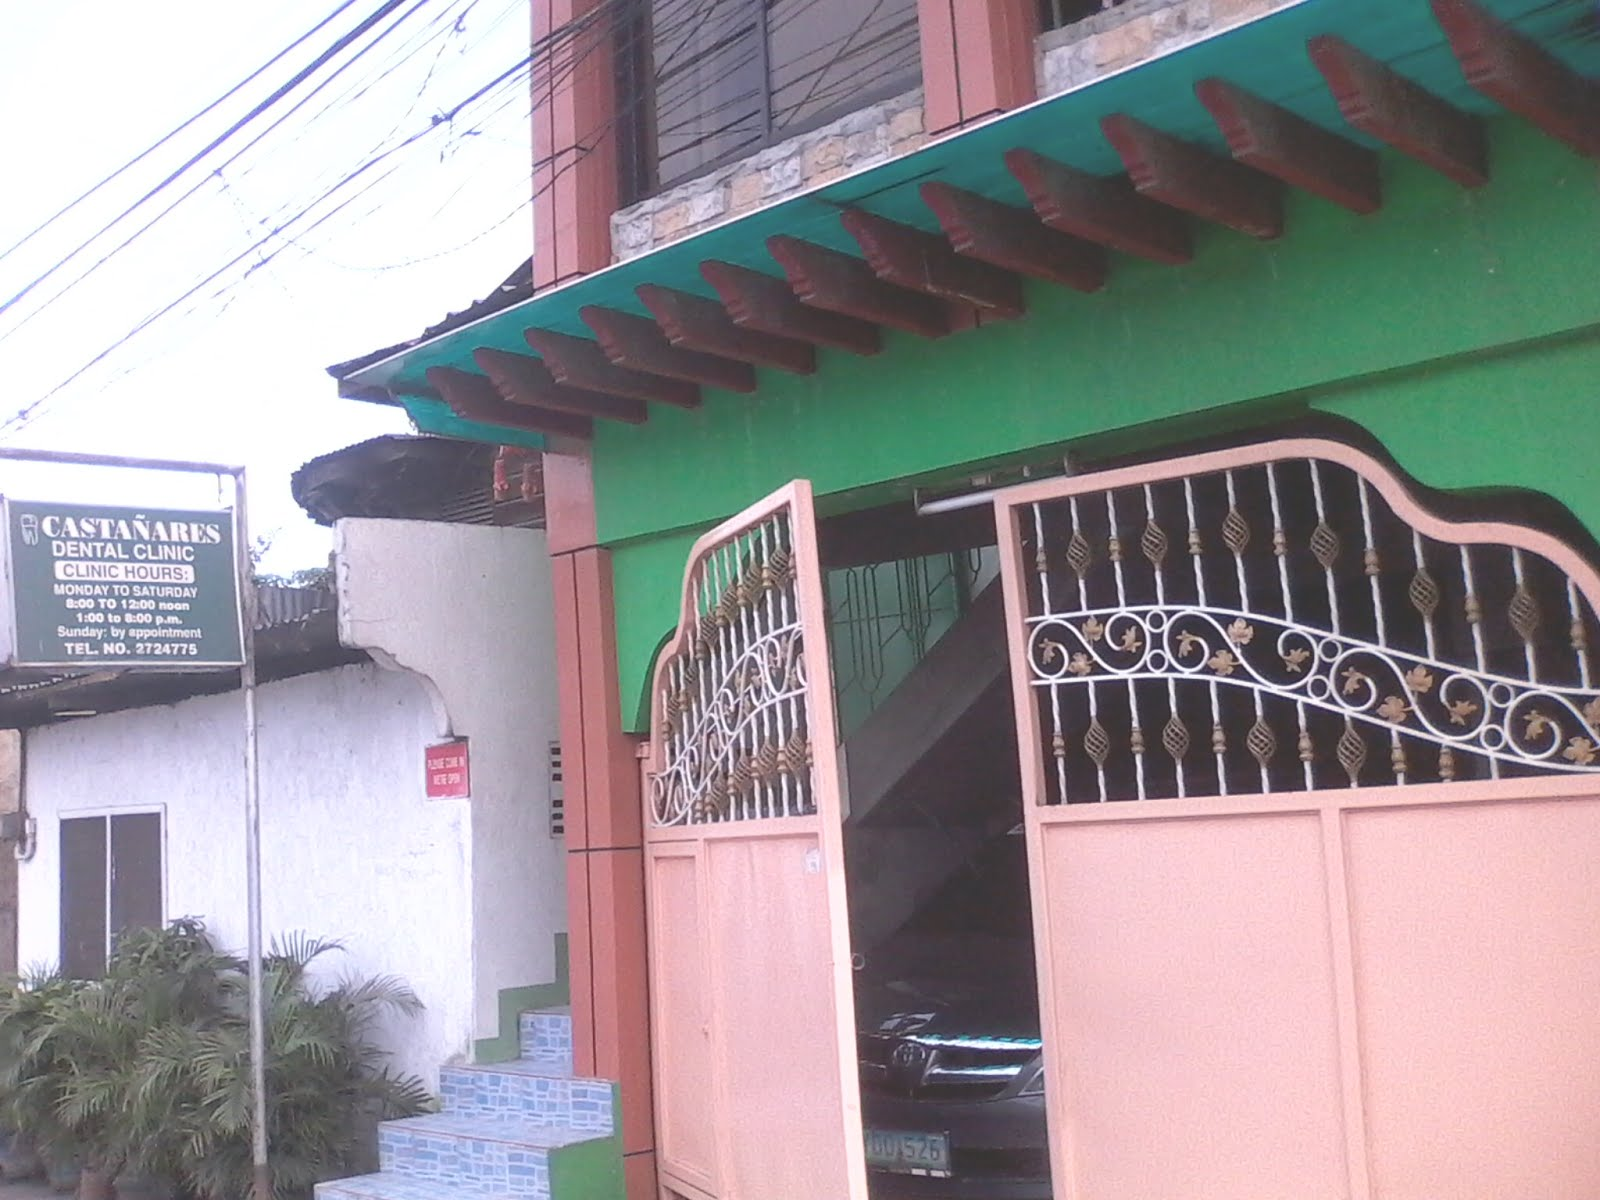 Castañares Dental Clinic